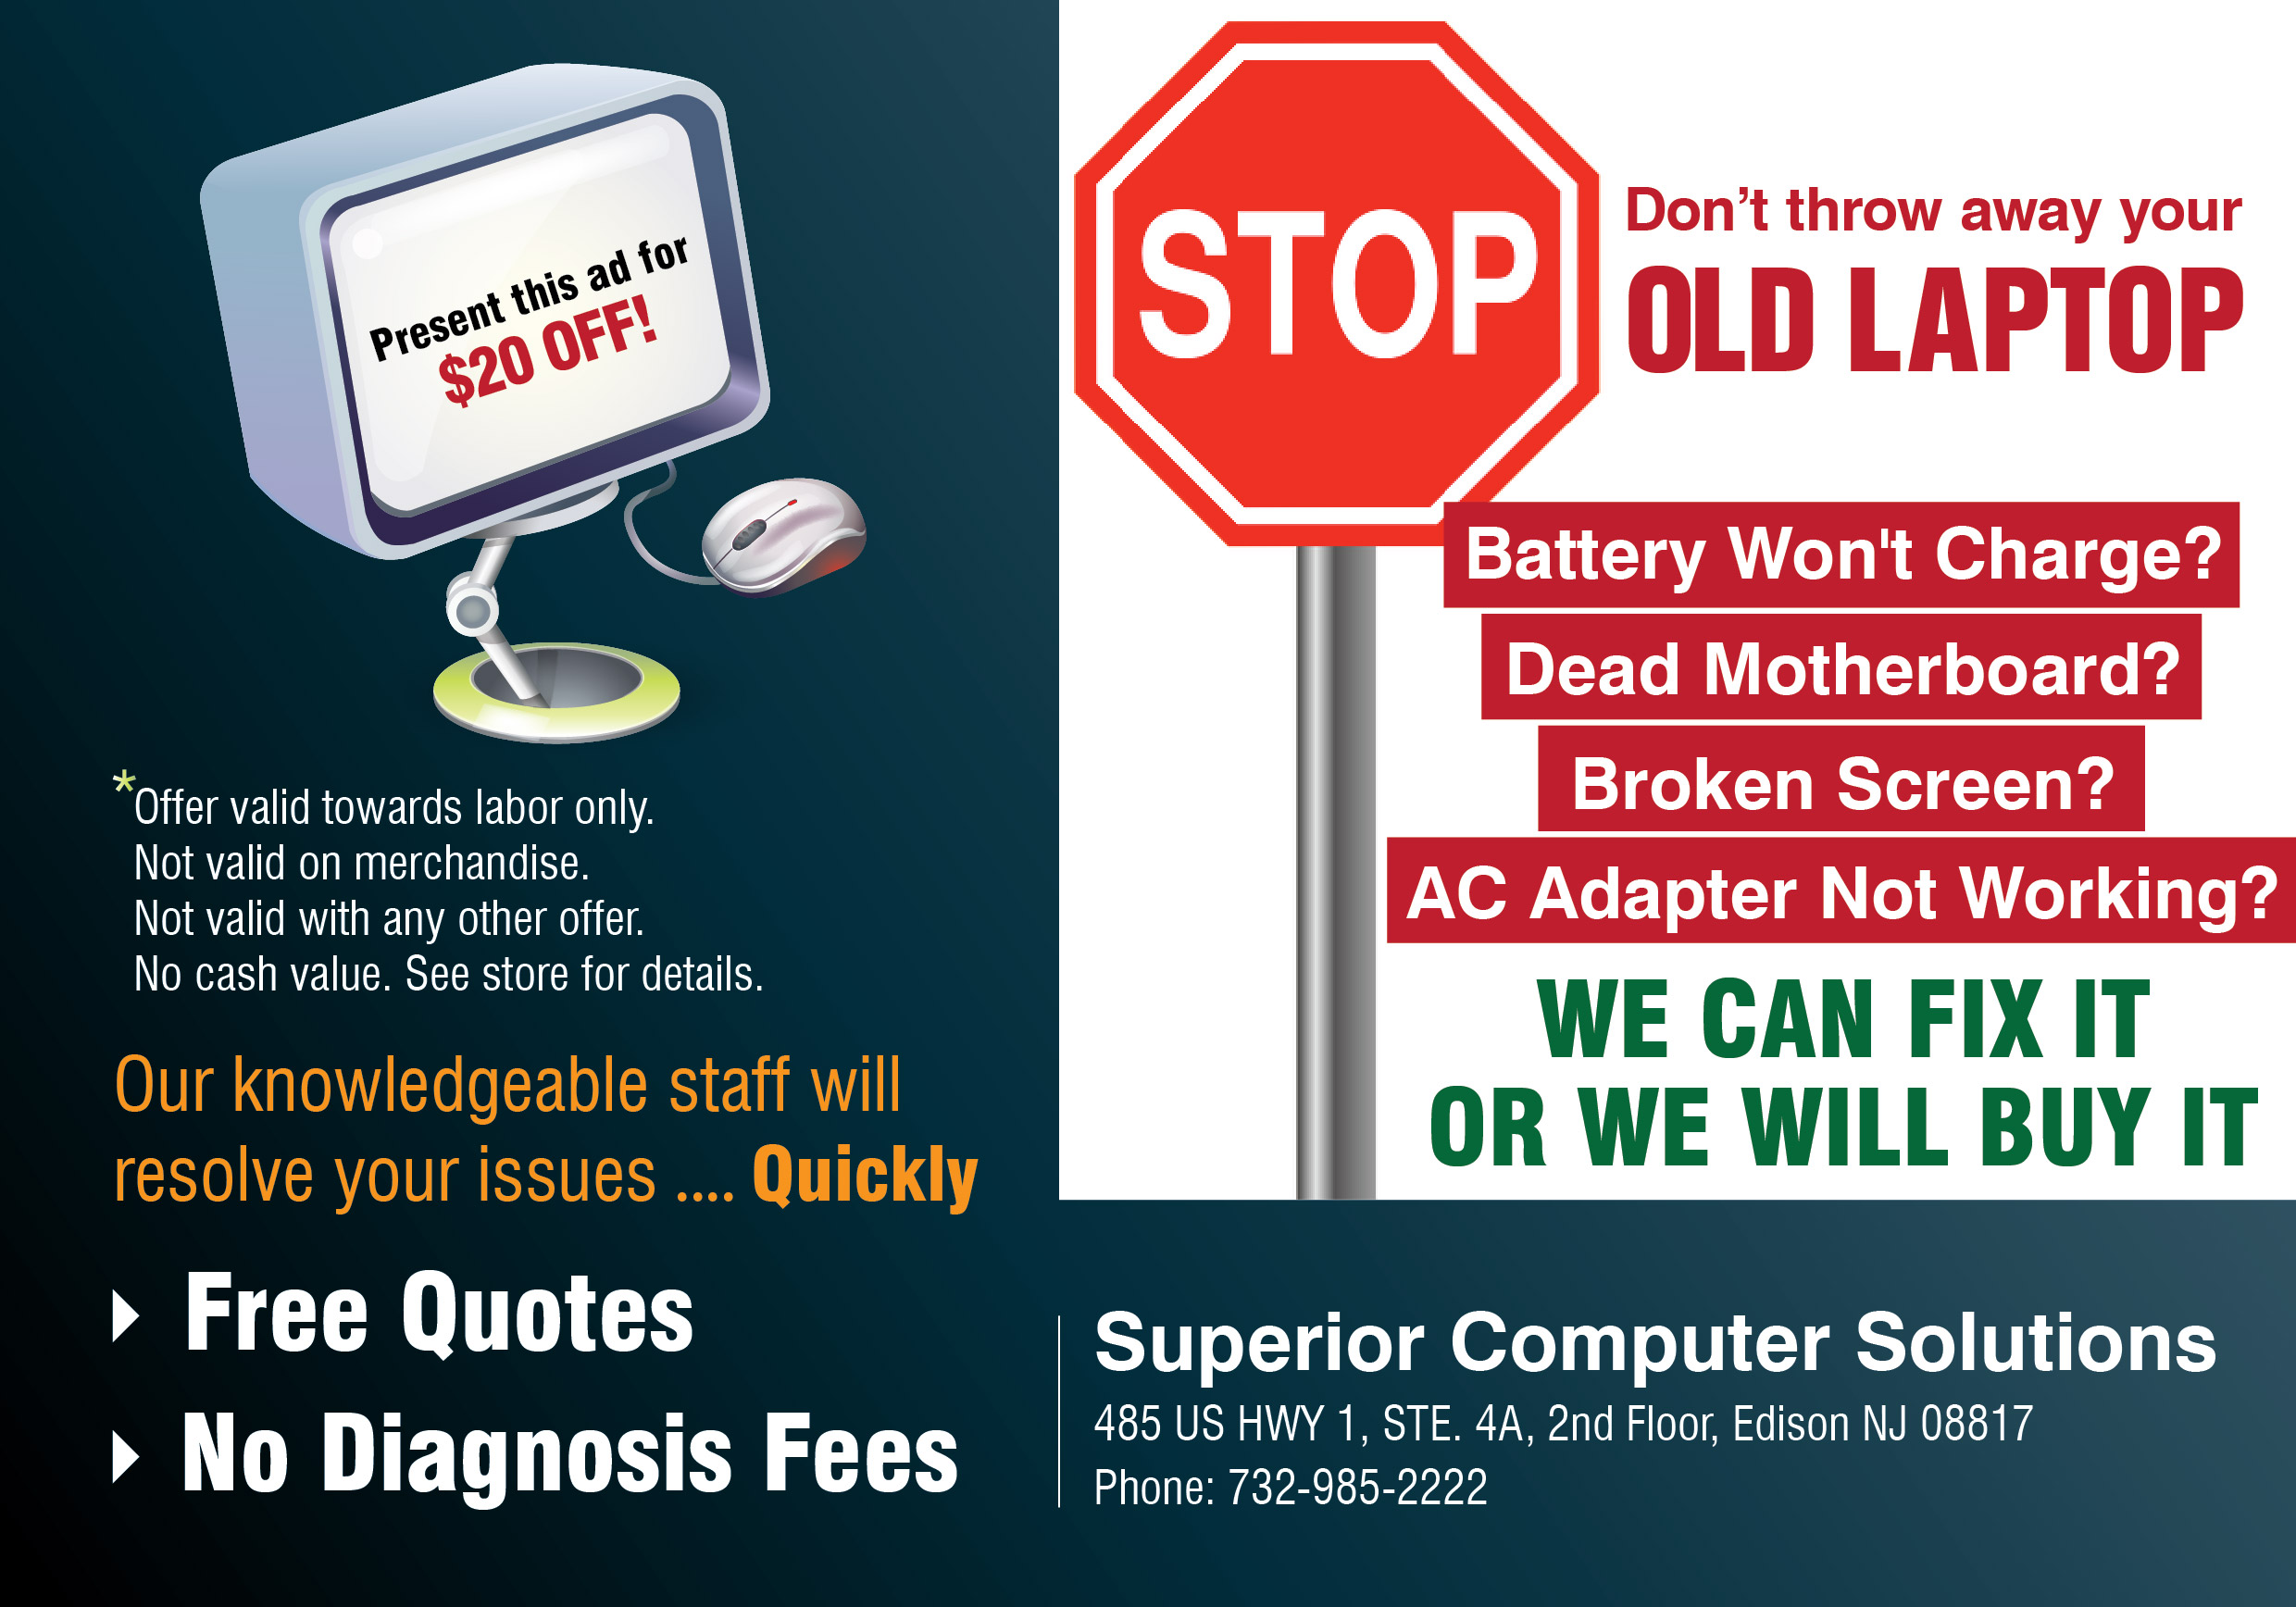 Services Discount Offer